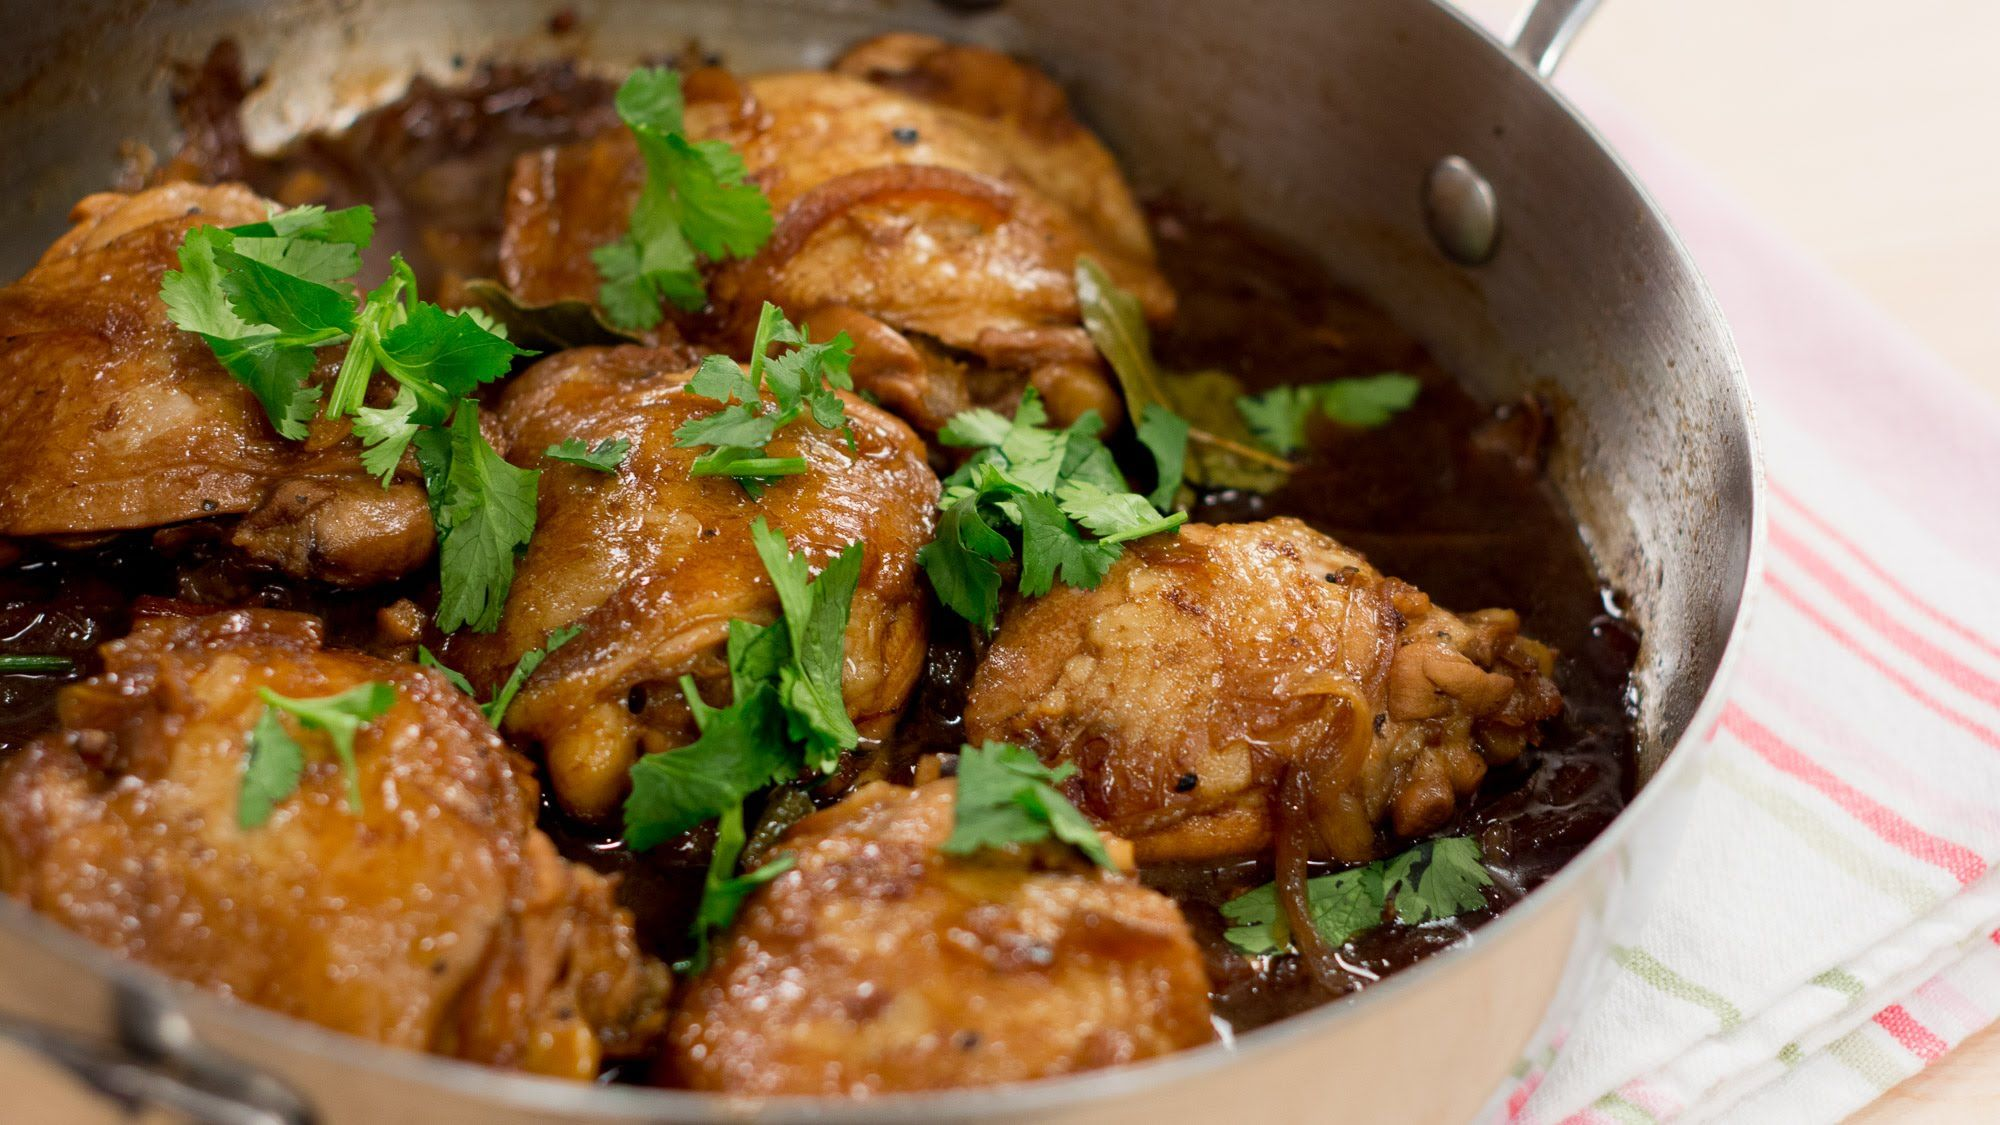 Chicken adobo recipe pais kitchen youtube filipino food chicken adobo recipe pais kitchen youtube filipino recipesfilipino foodasian forumfinder Gallery